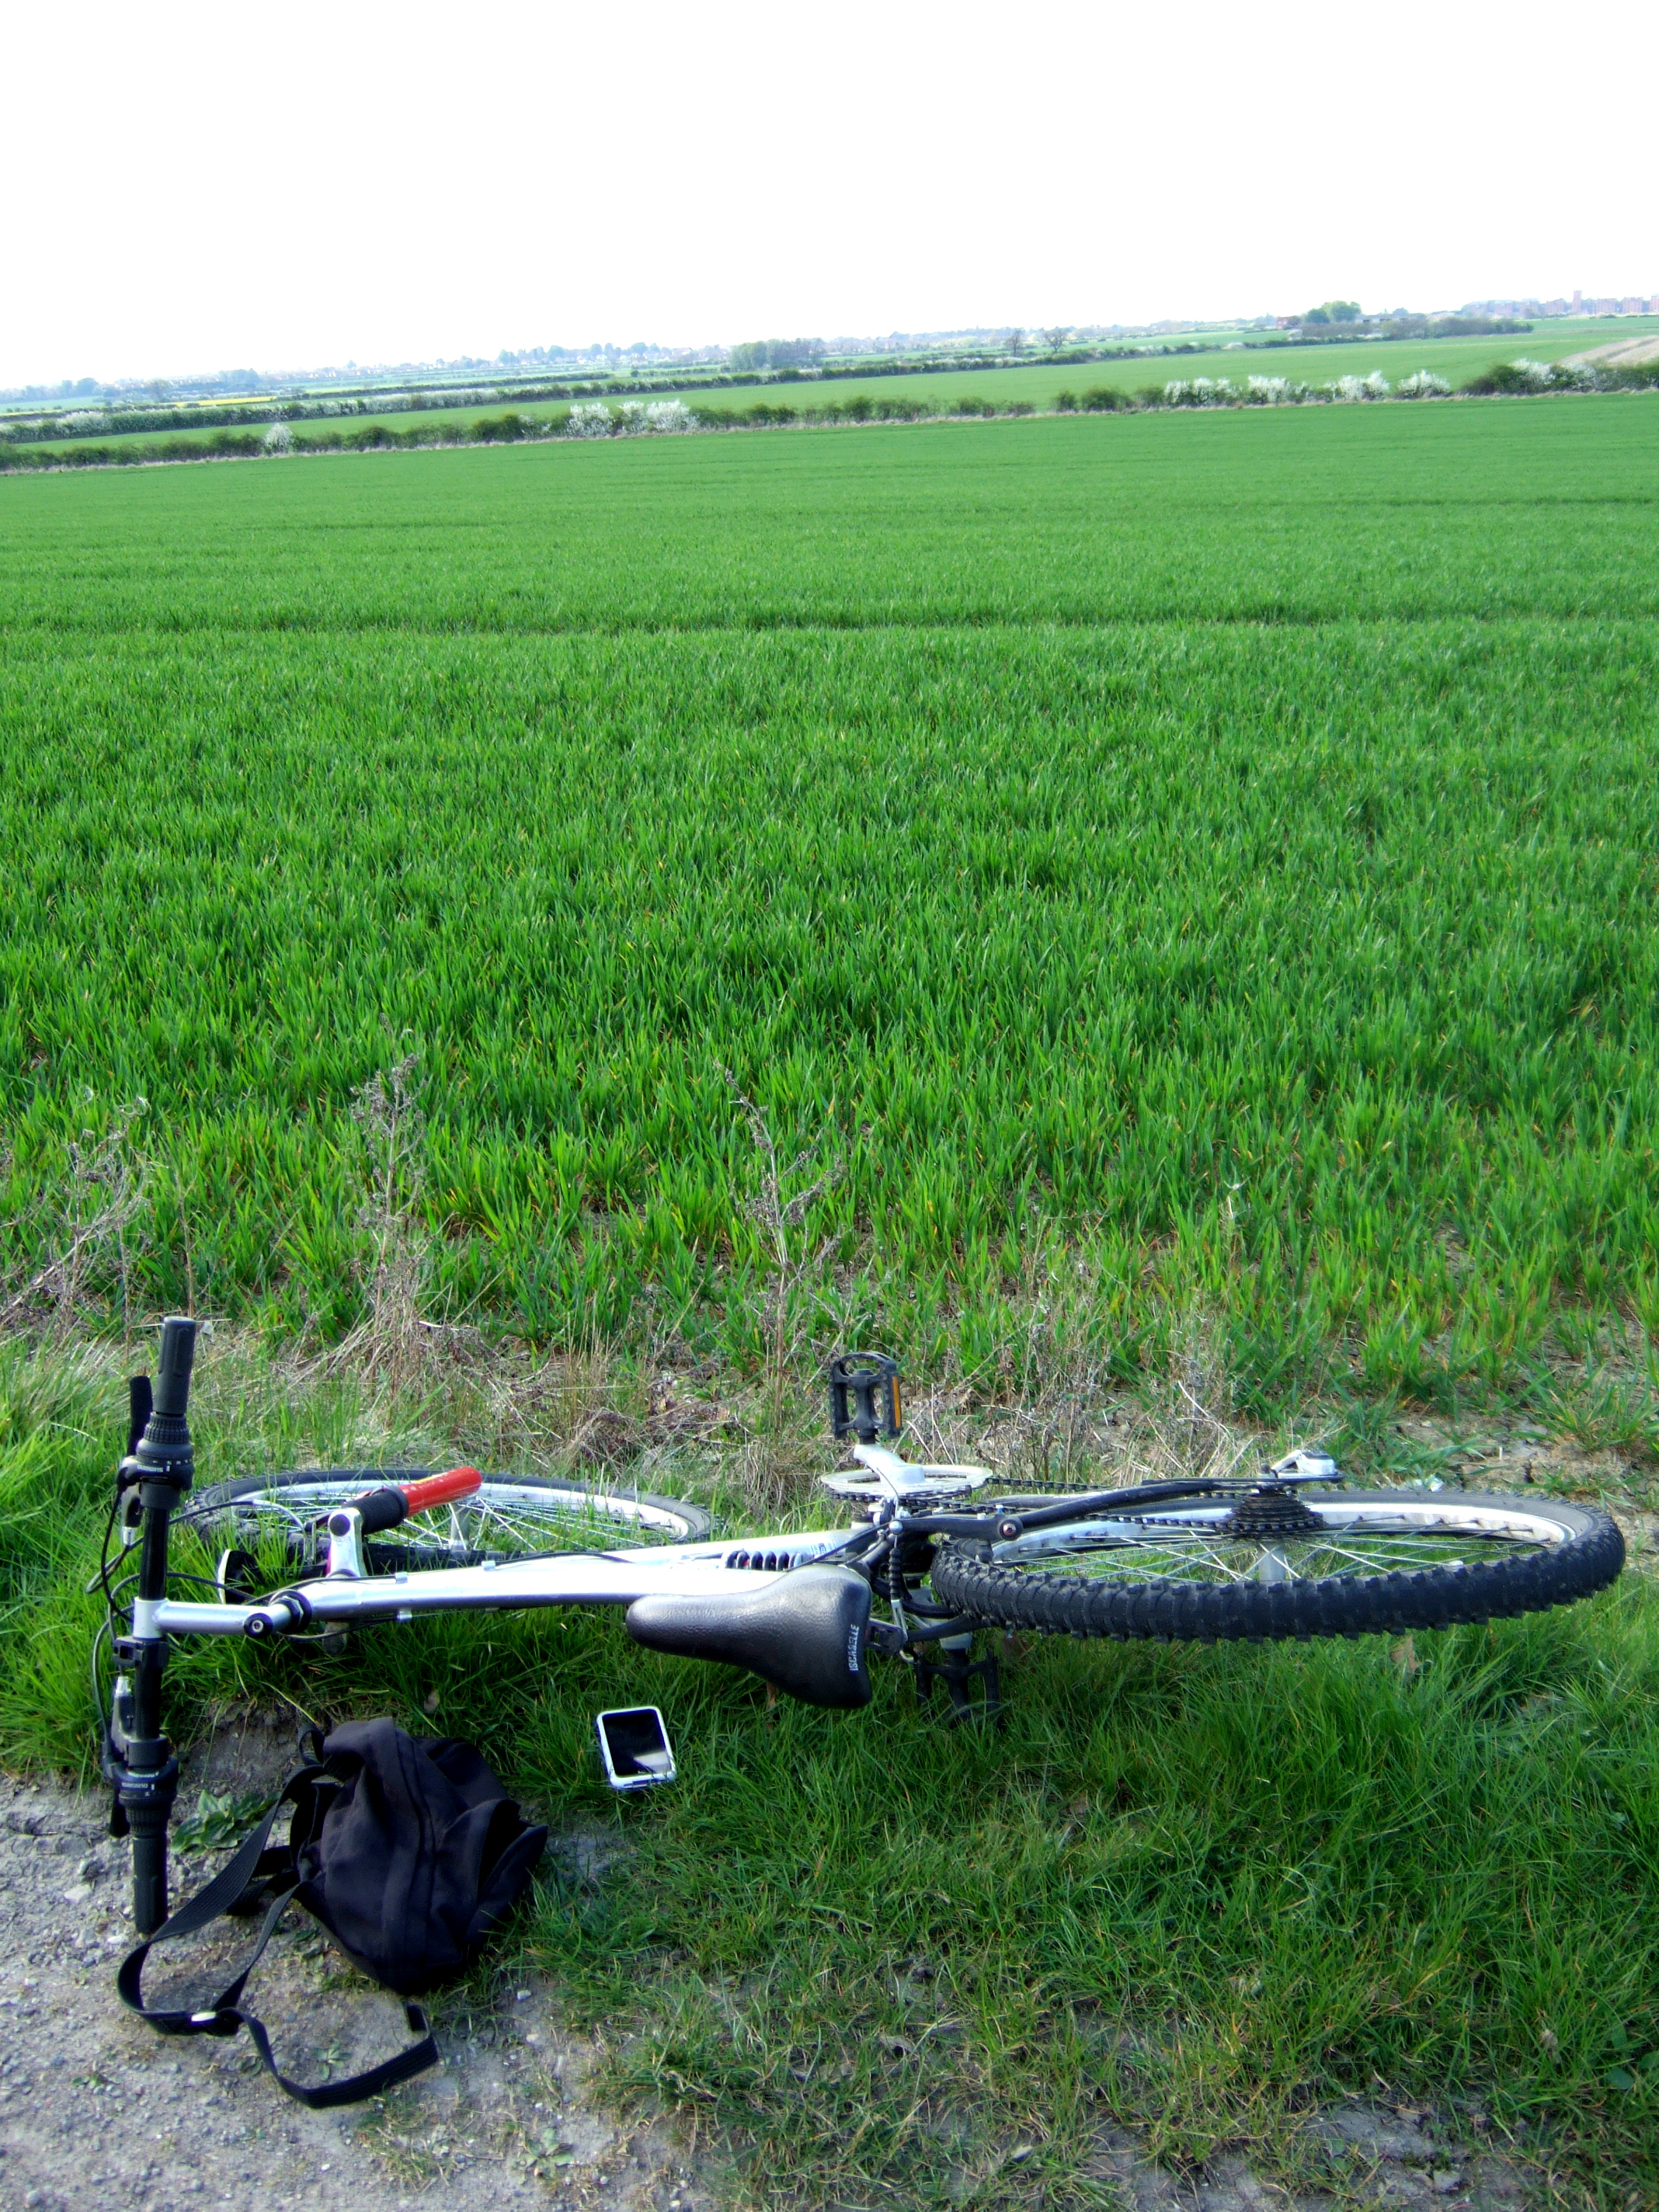 My bike in the Sleaford countryside